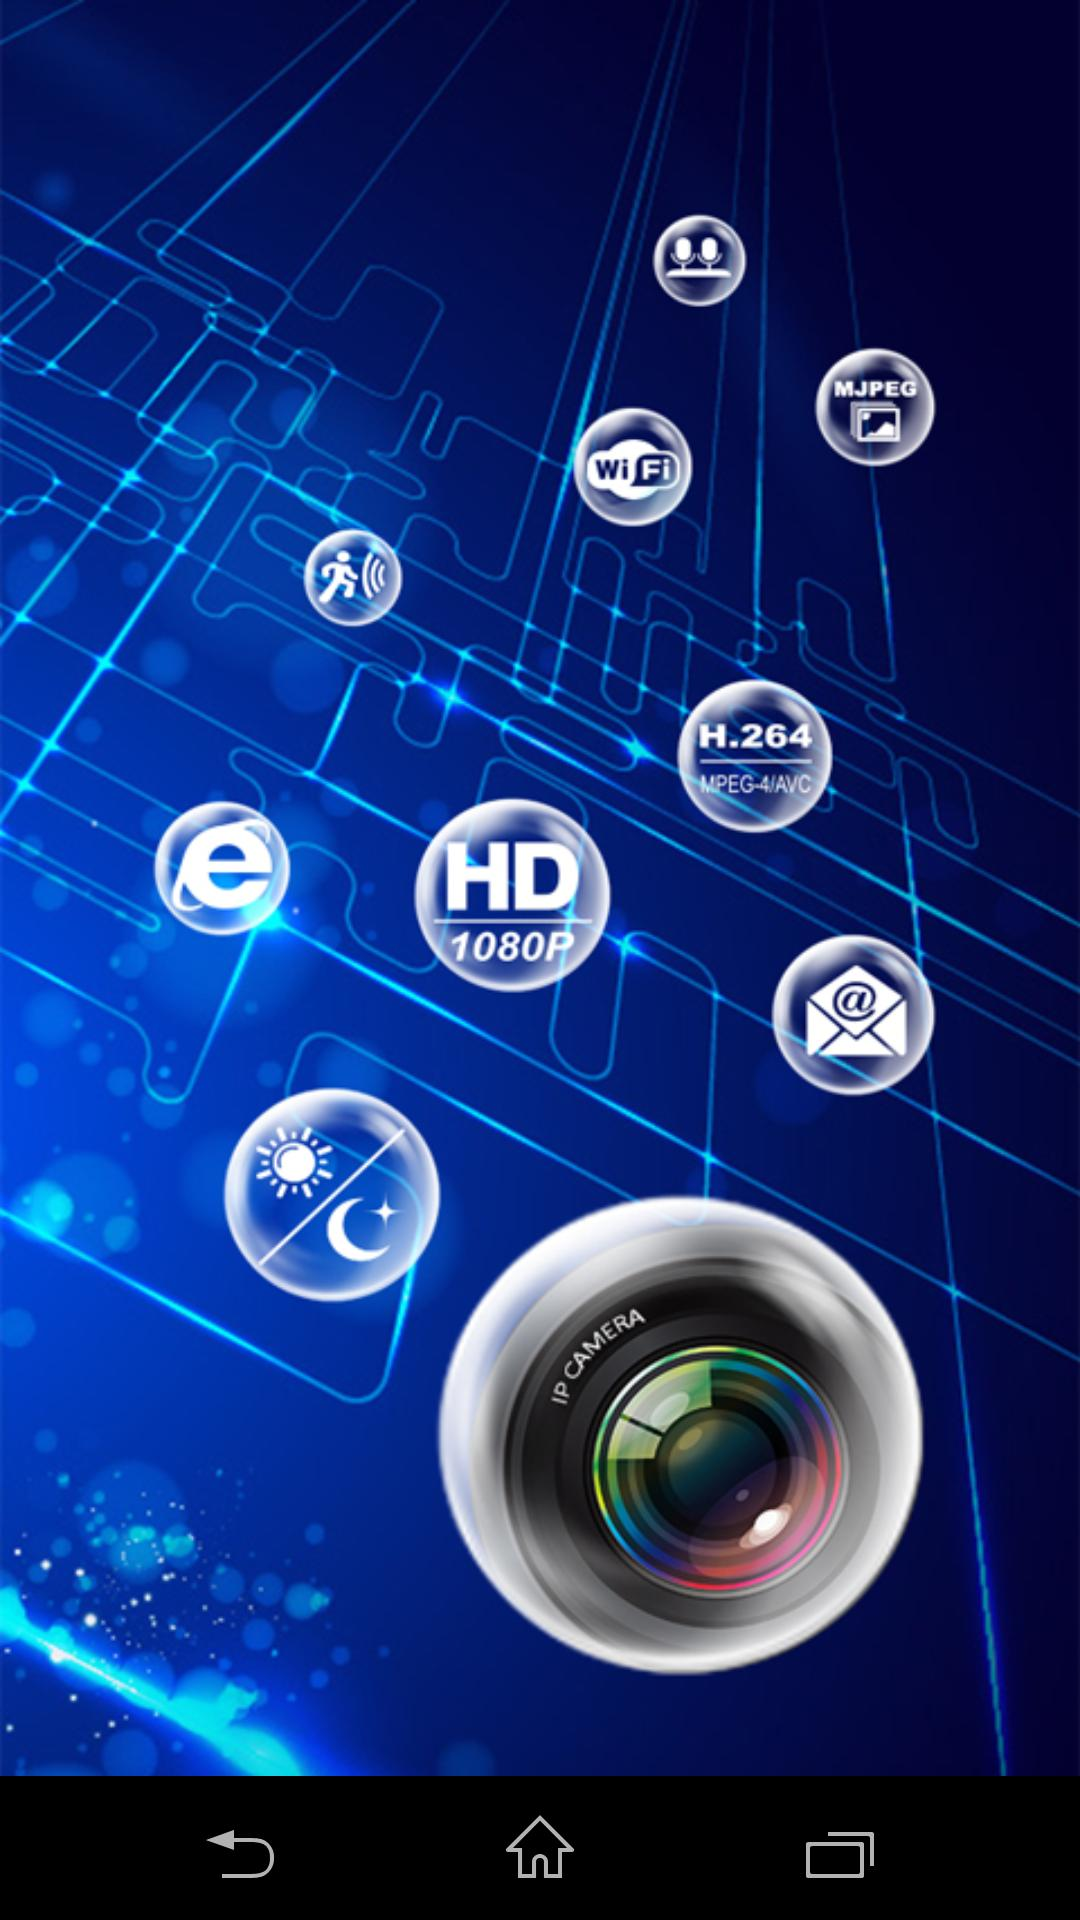 P2P IPCamera for Android - APK Download